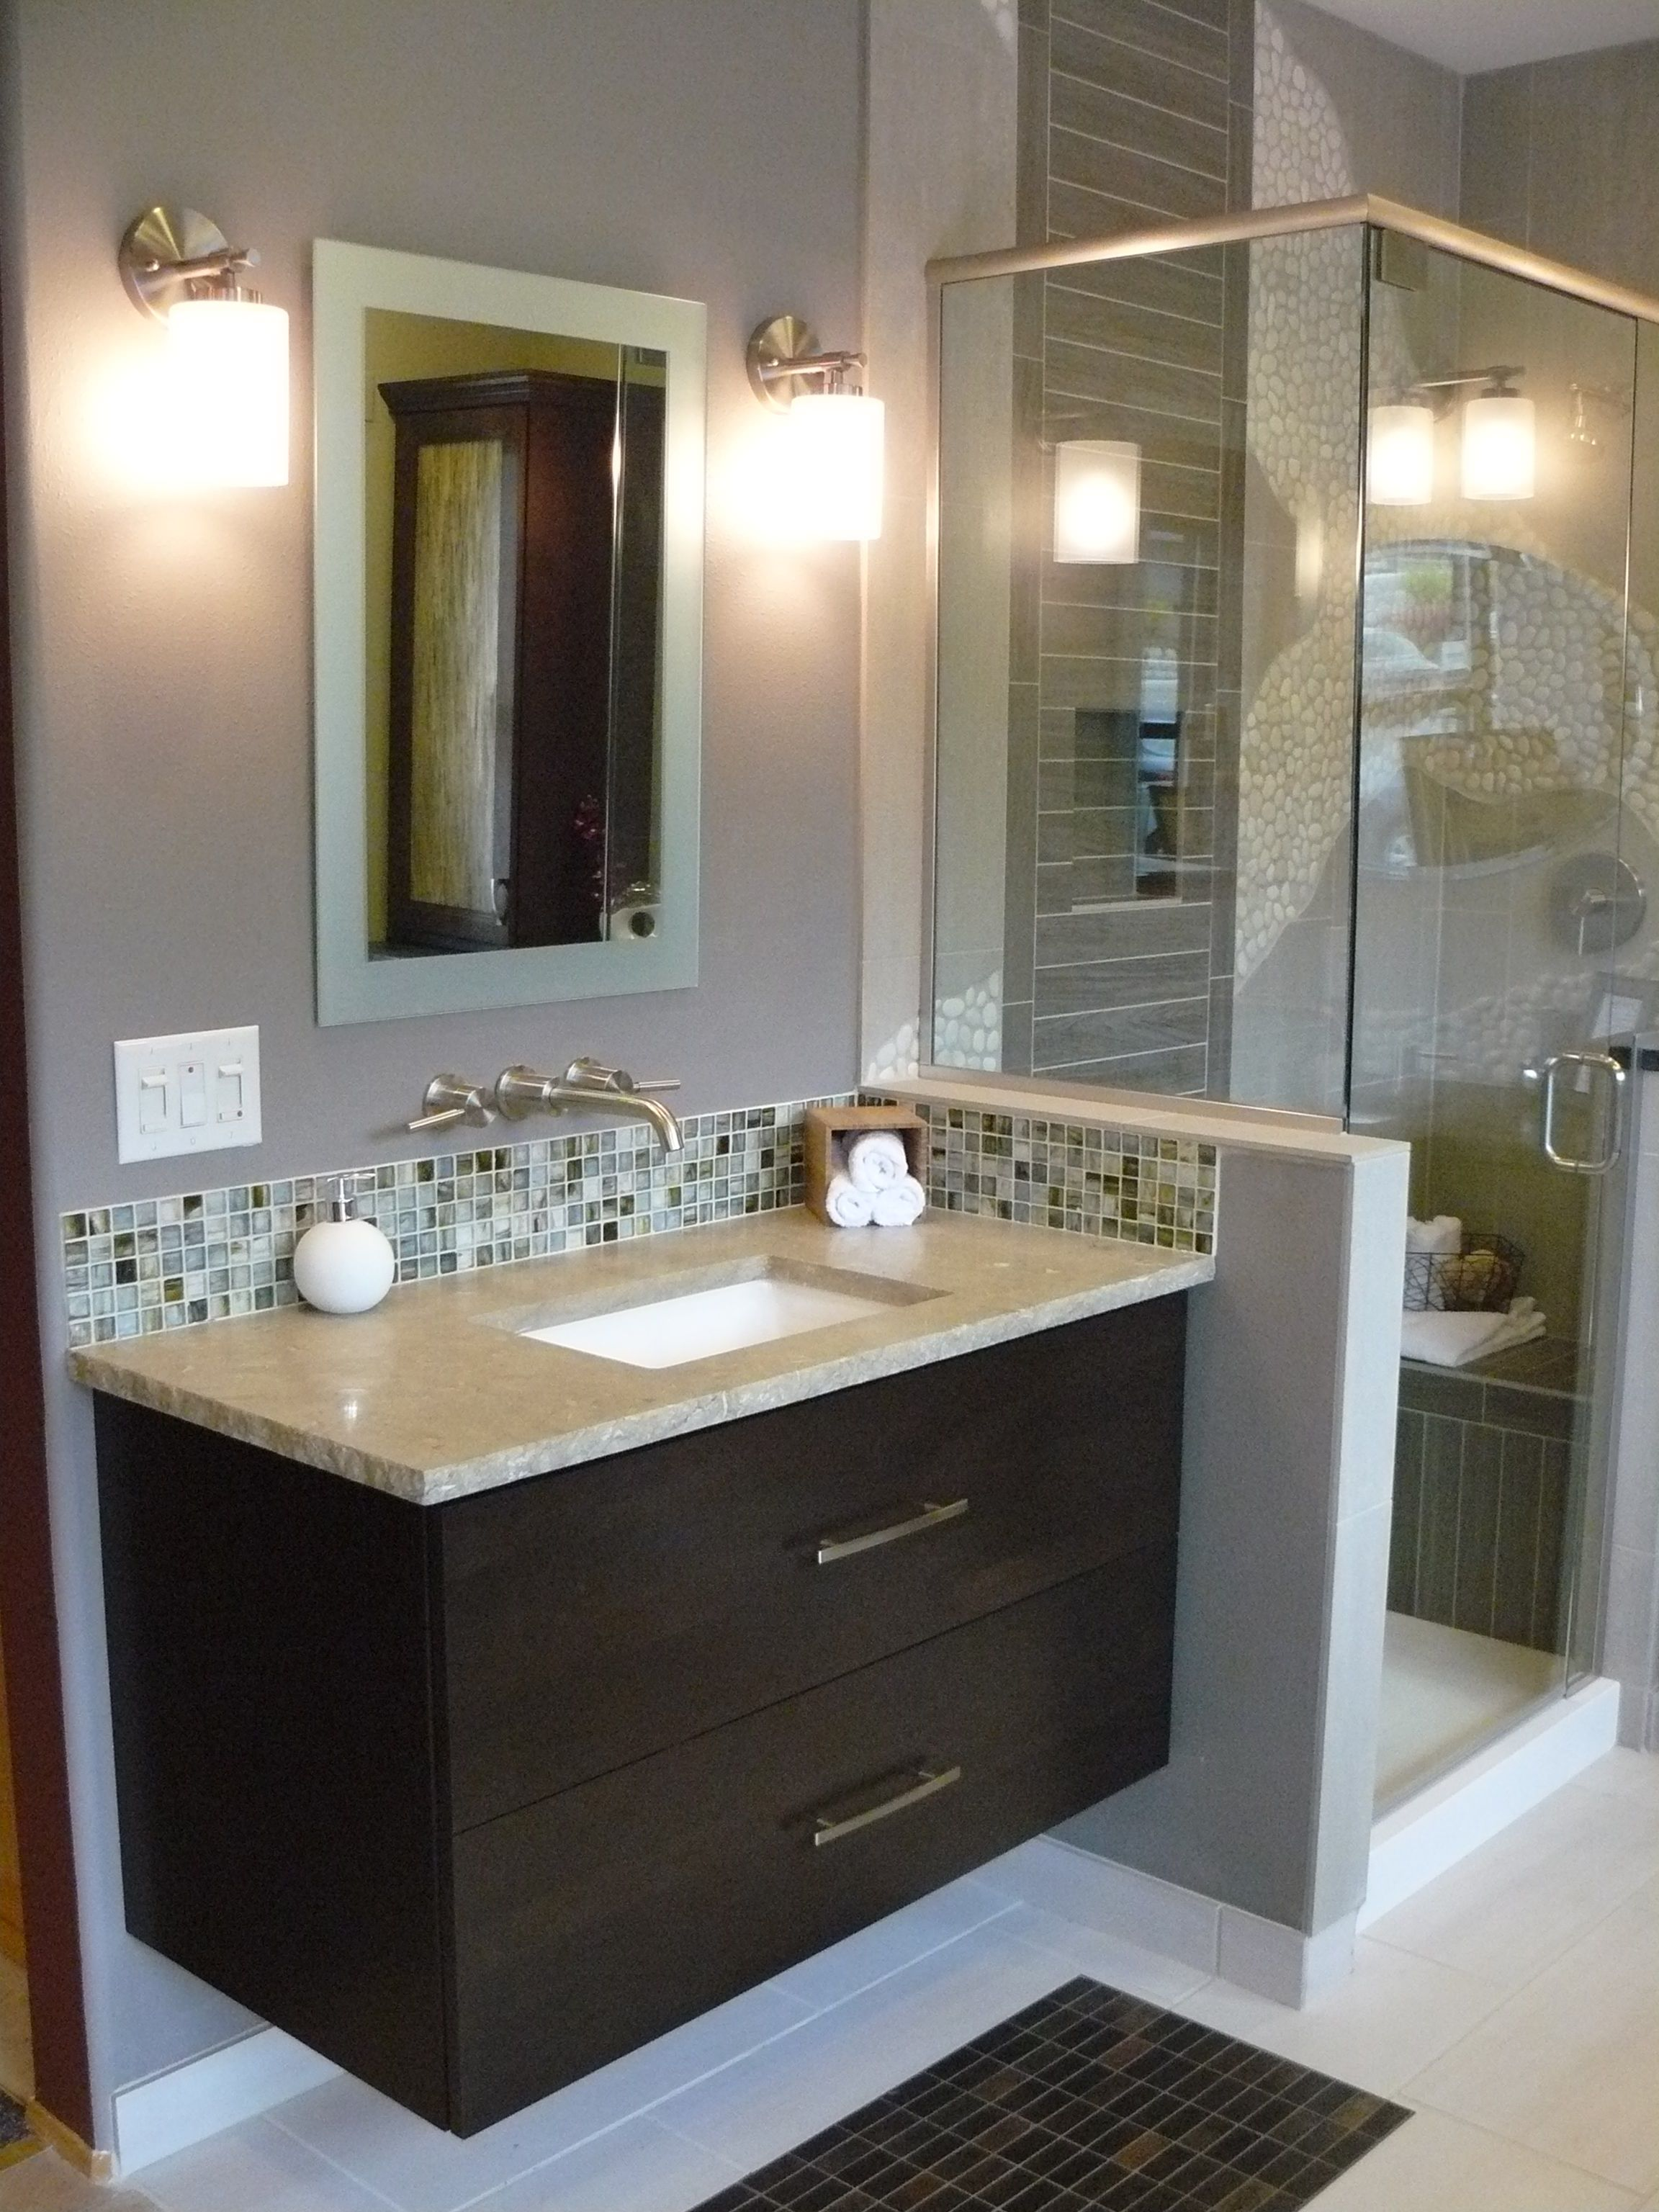 Brilliant Style Small Bathroom Design with Gray